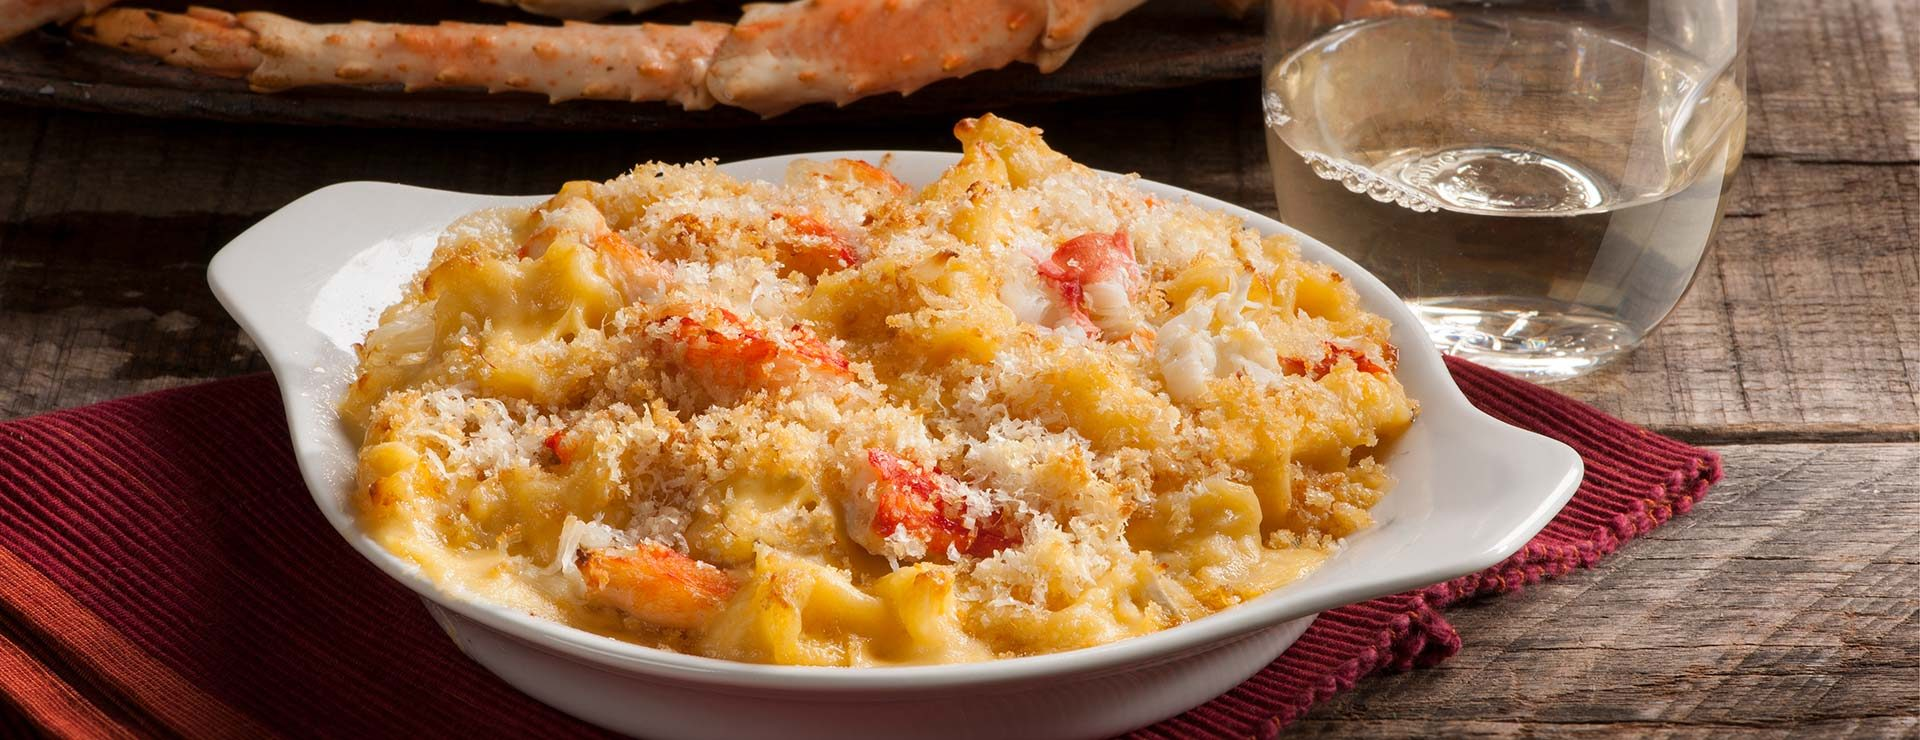 Crabmeat Mac and Cheese